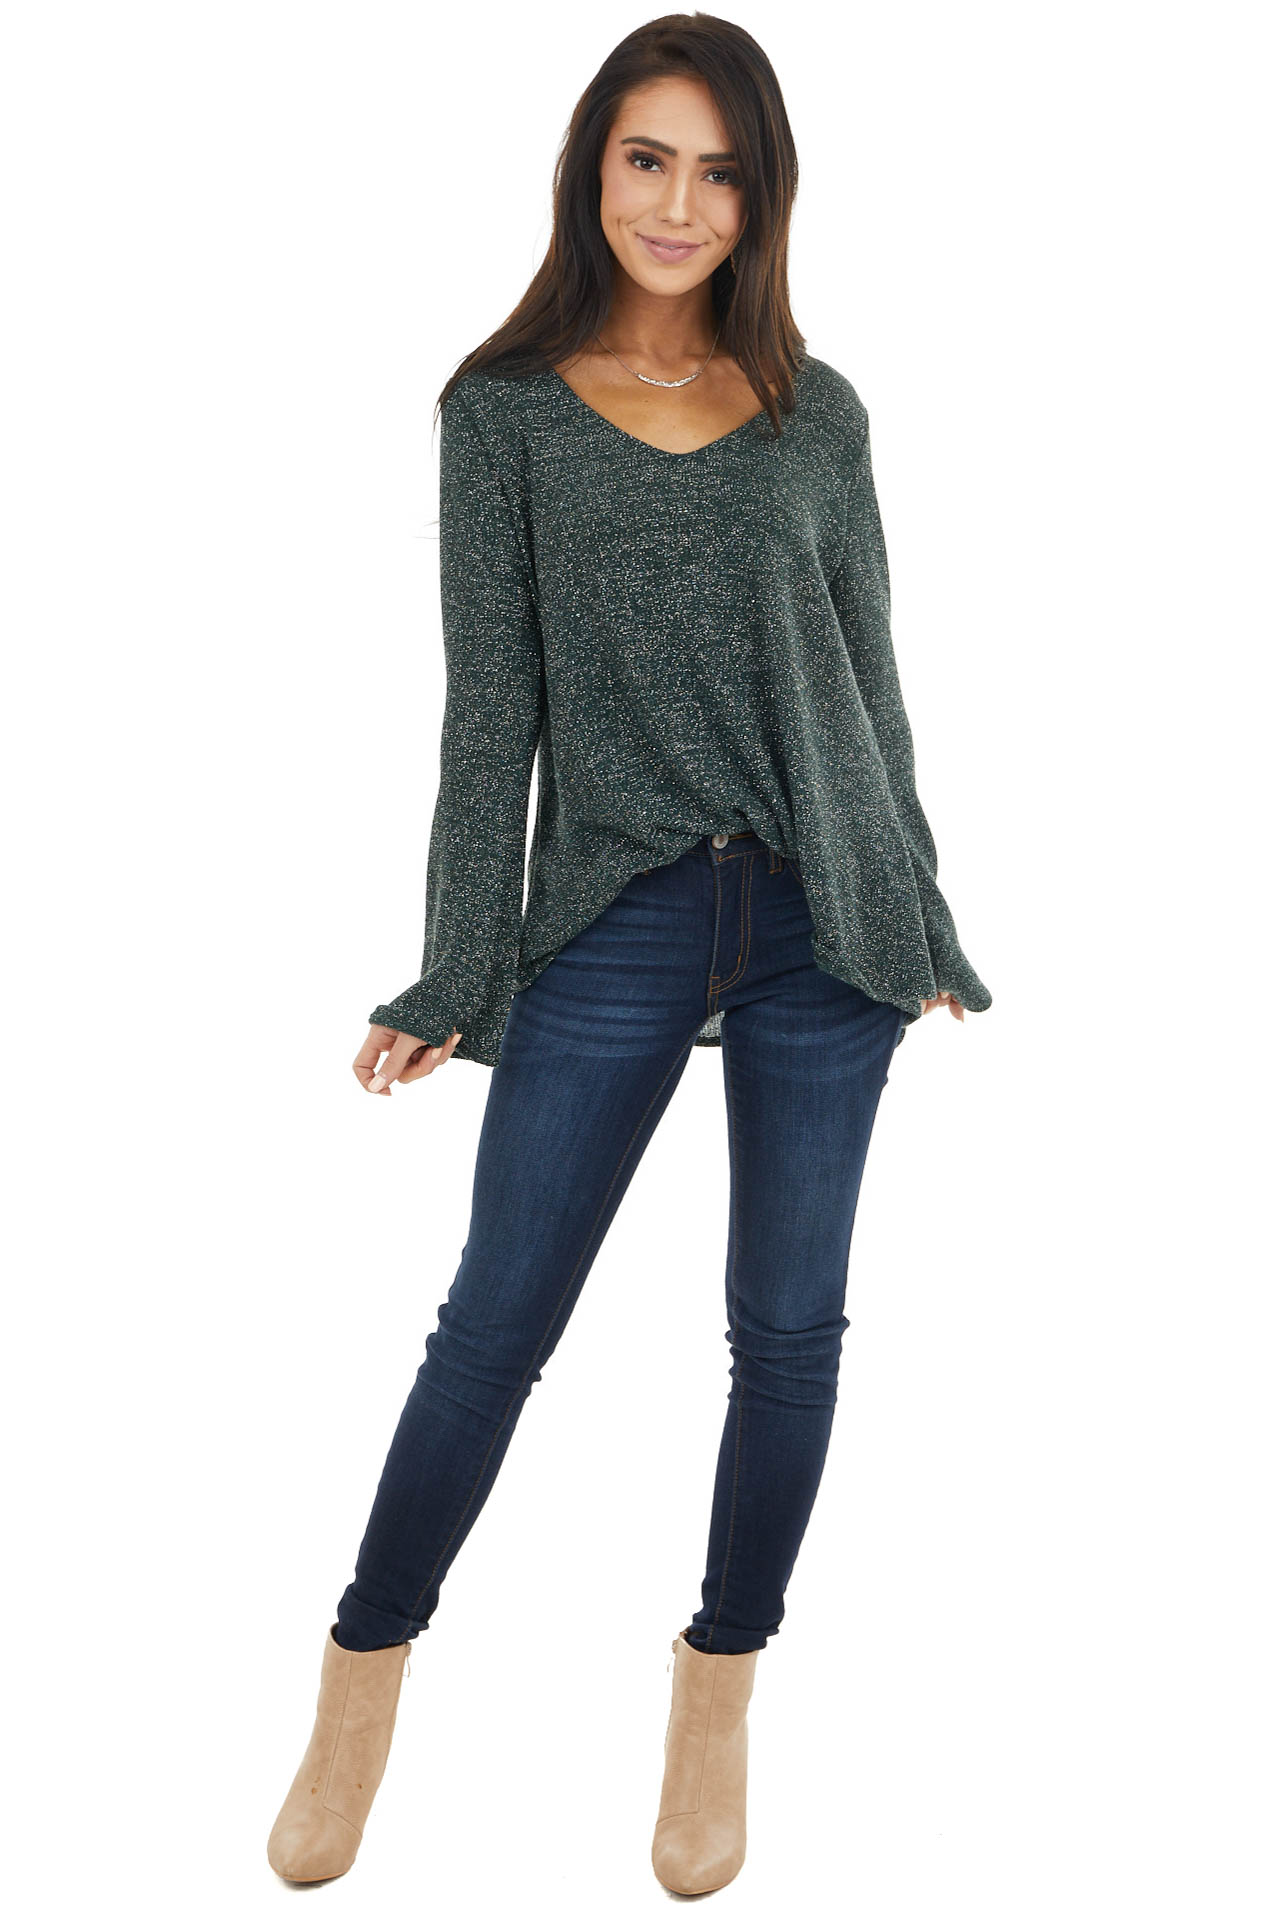 Dark Green Long Sleeve Top with Silver Thread Details